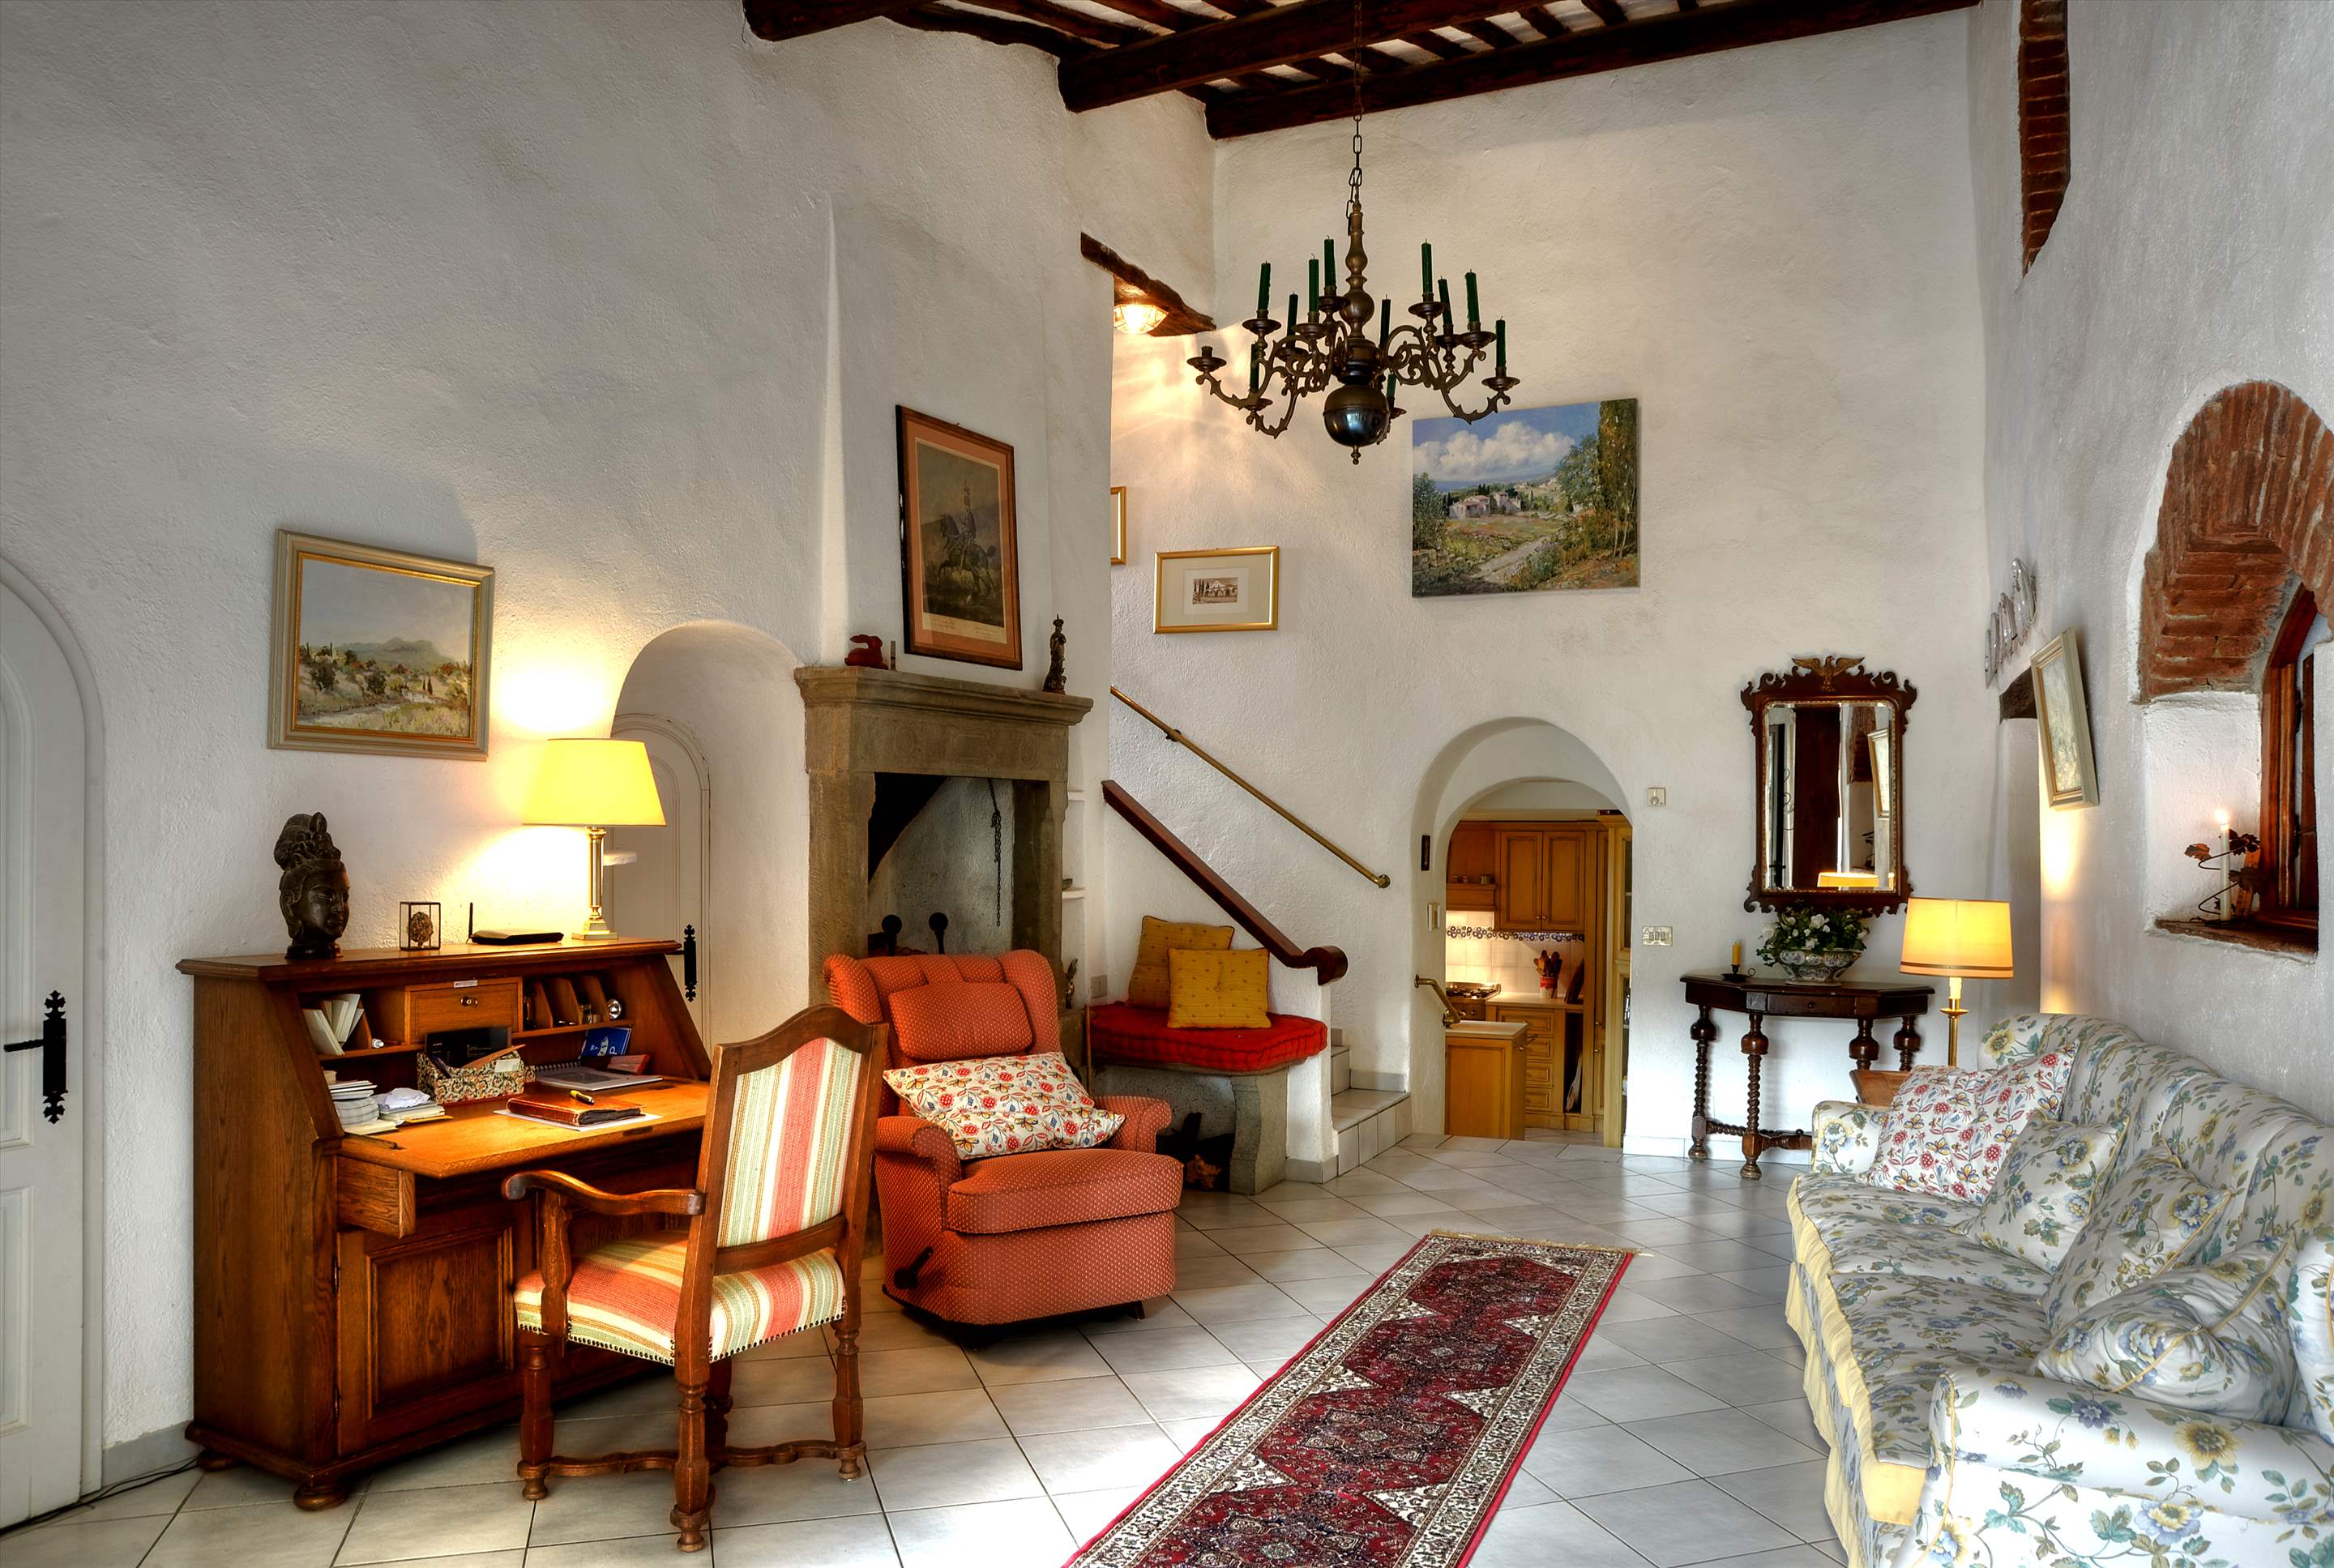 Villa Campana, 5 bedroom villa in Chianti & Countryside, Tuscany Photo #8